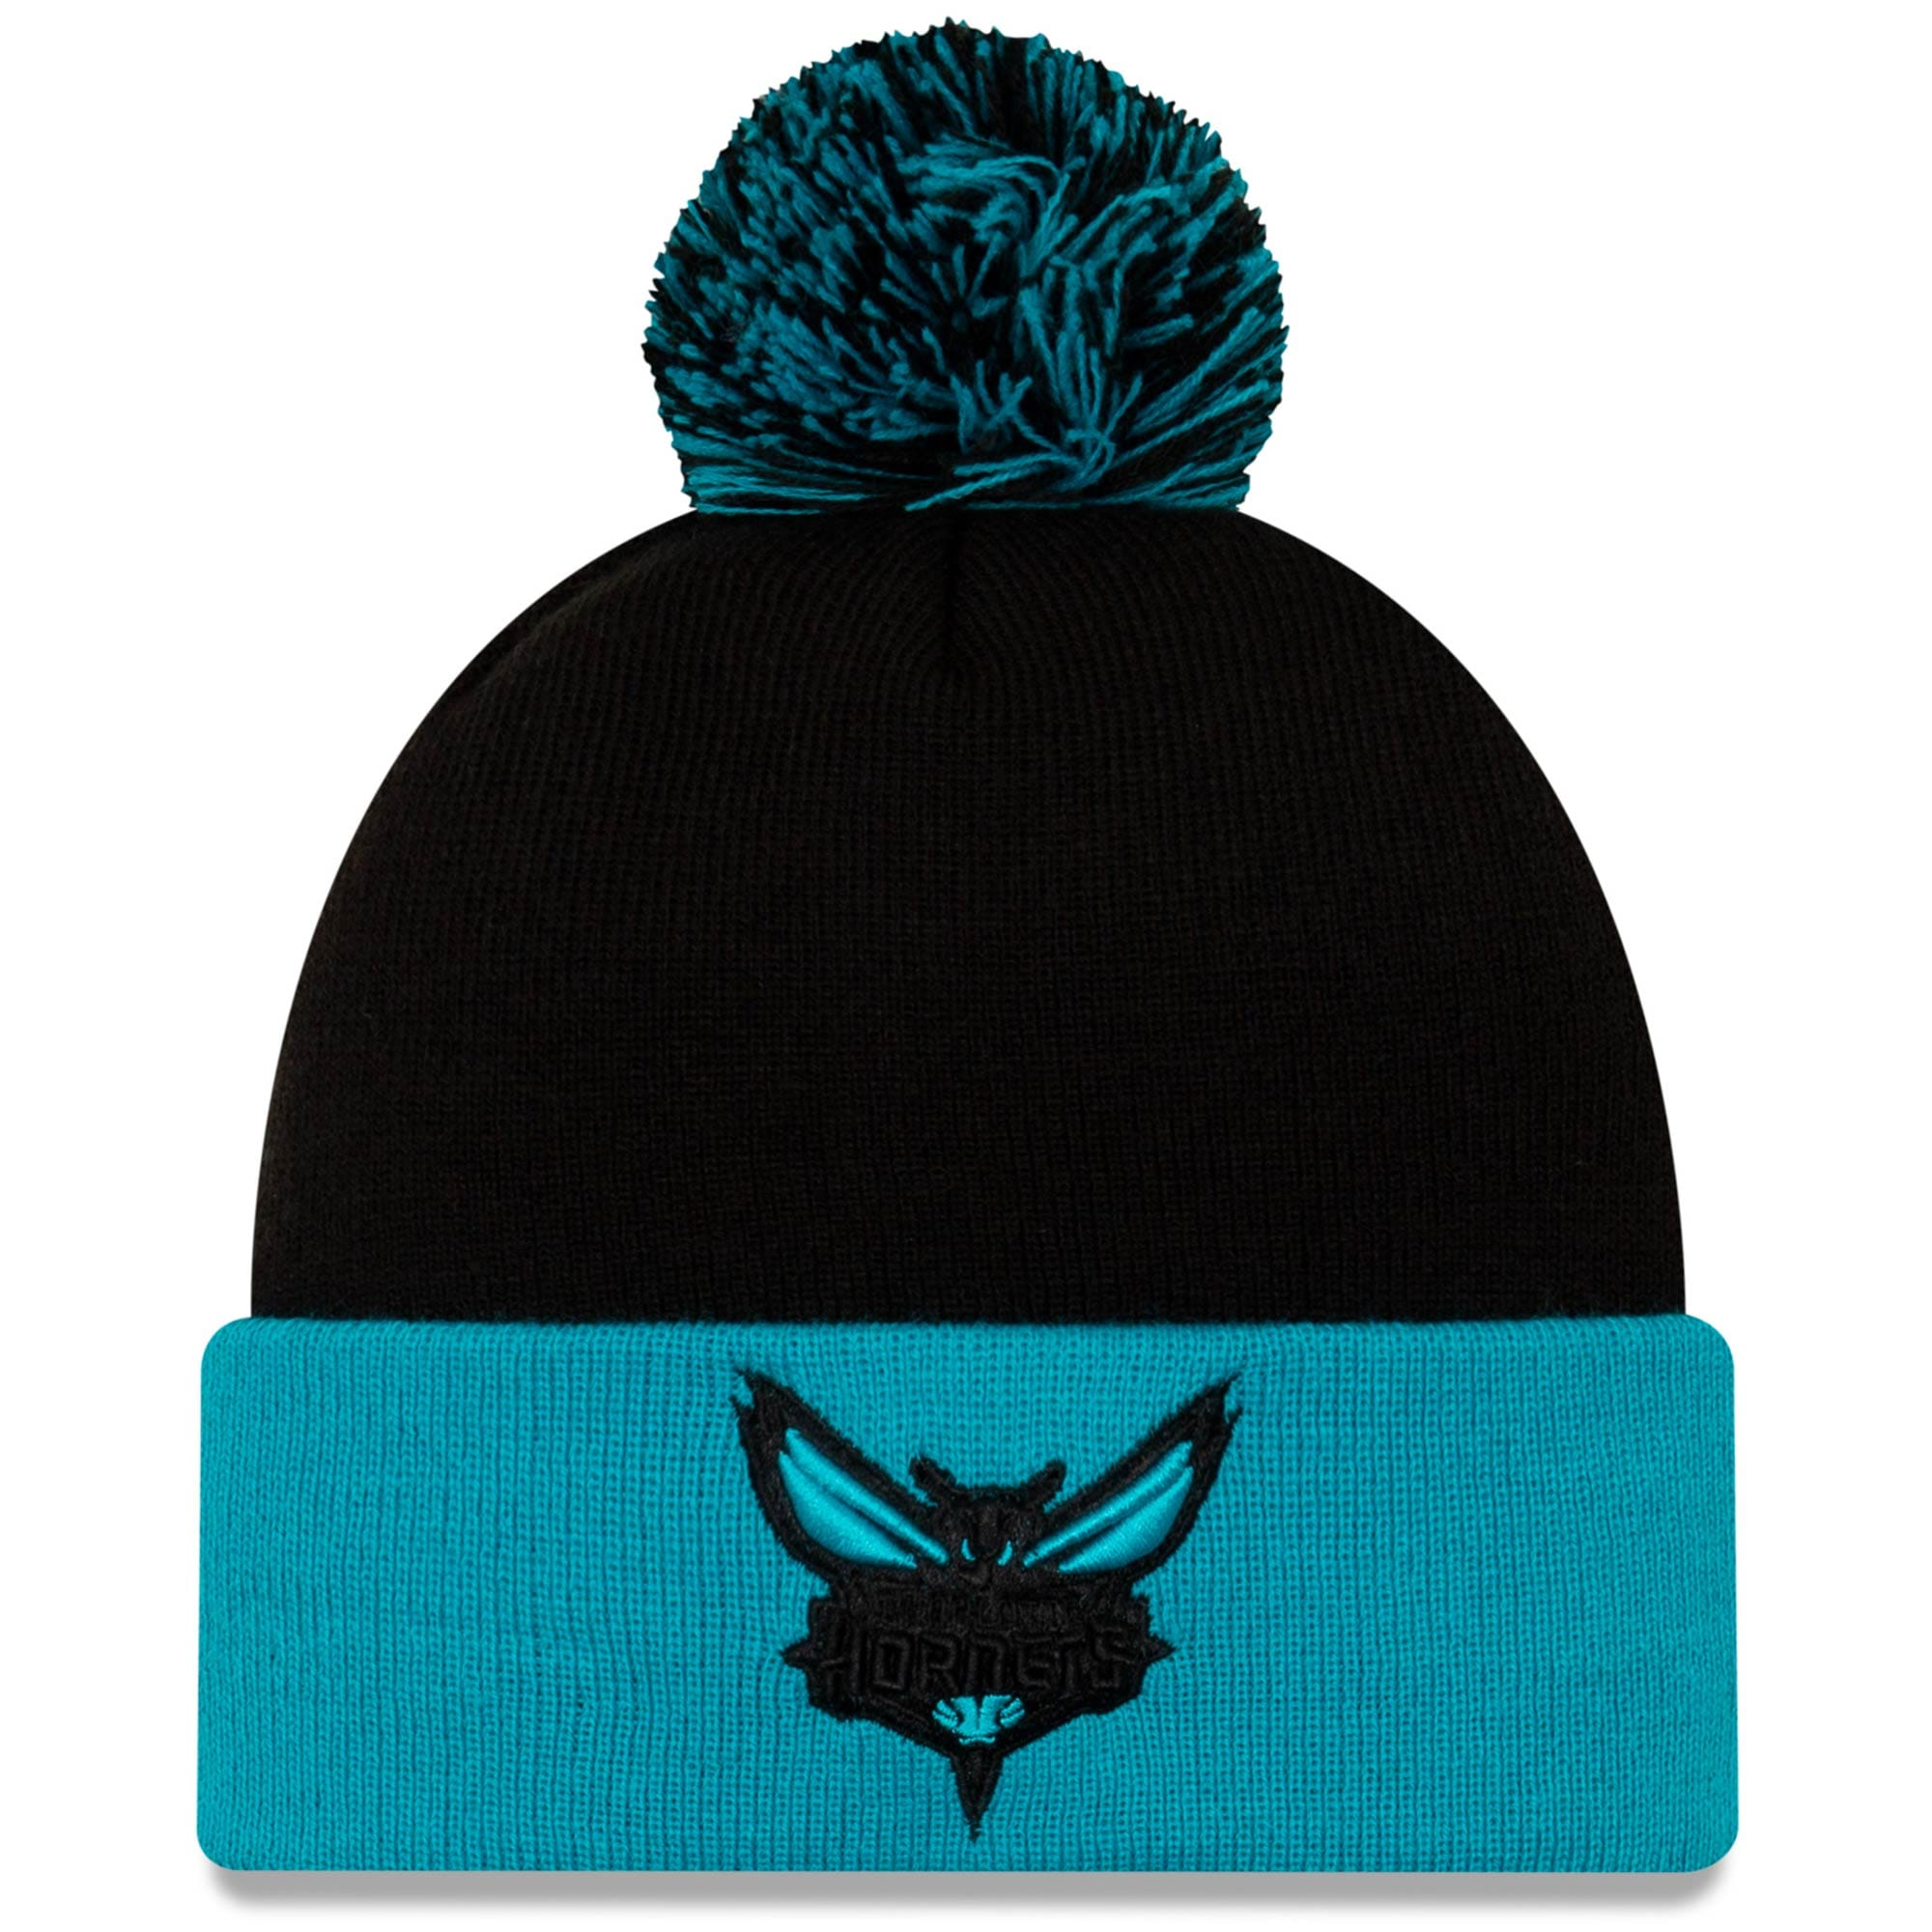 Charlotte Hornets New Era Cuffed Knit Hat with Pom - Black/Teal